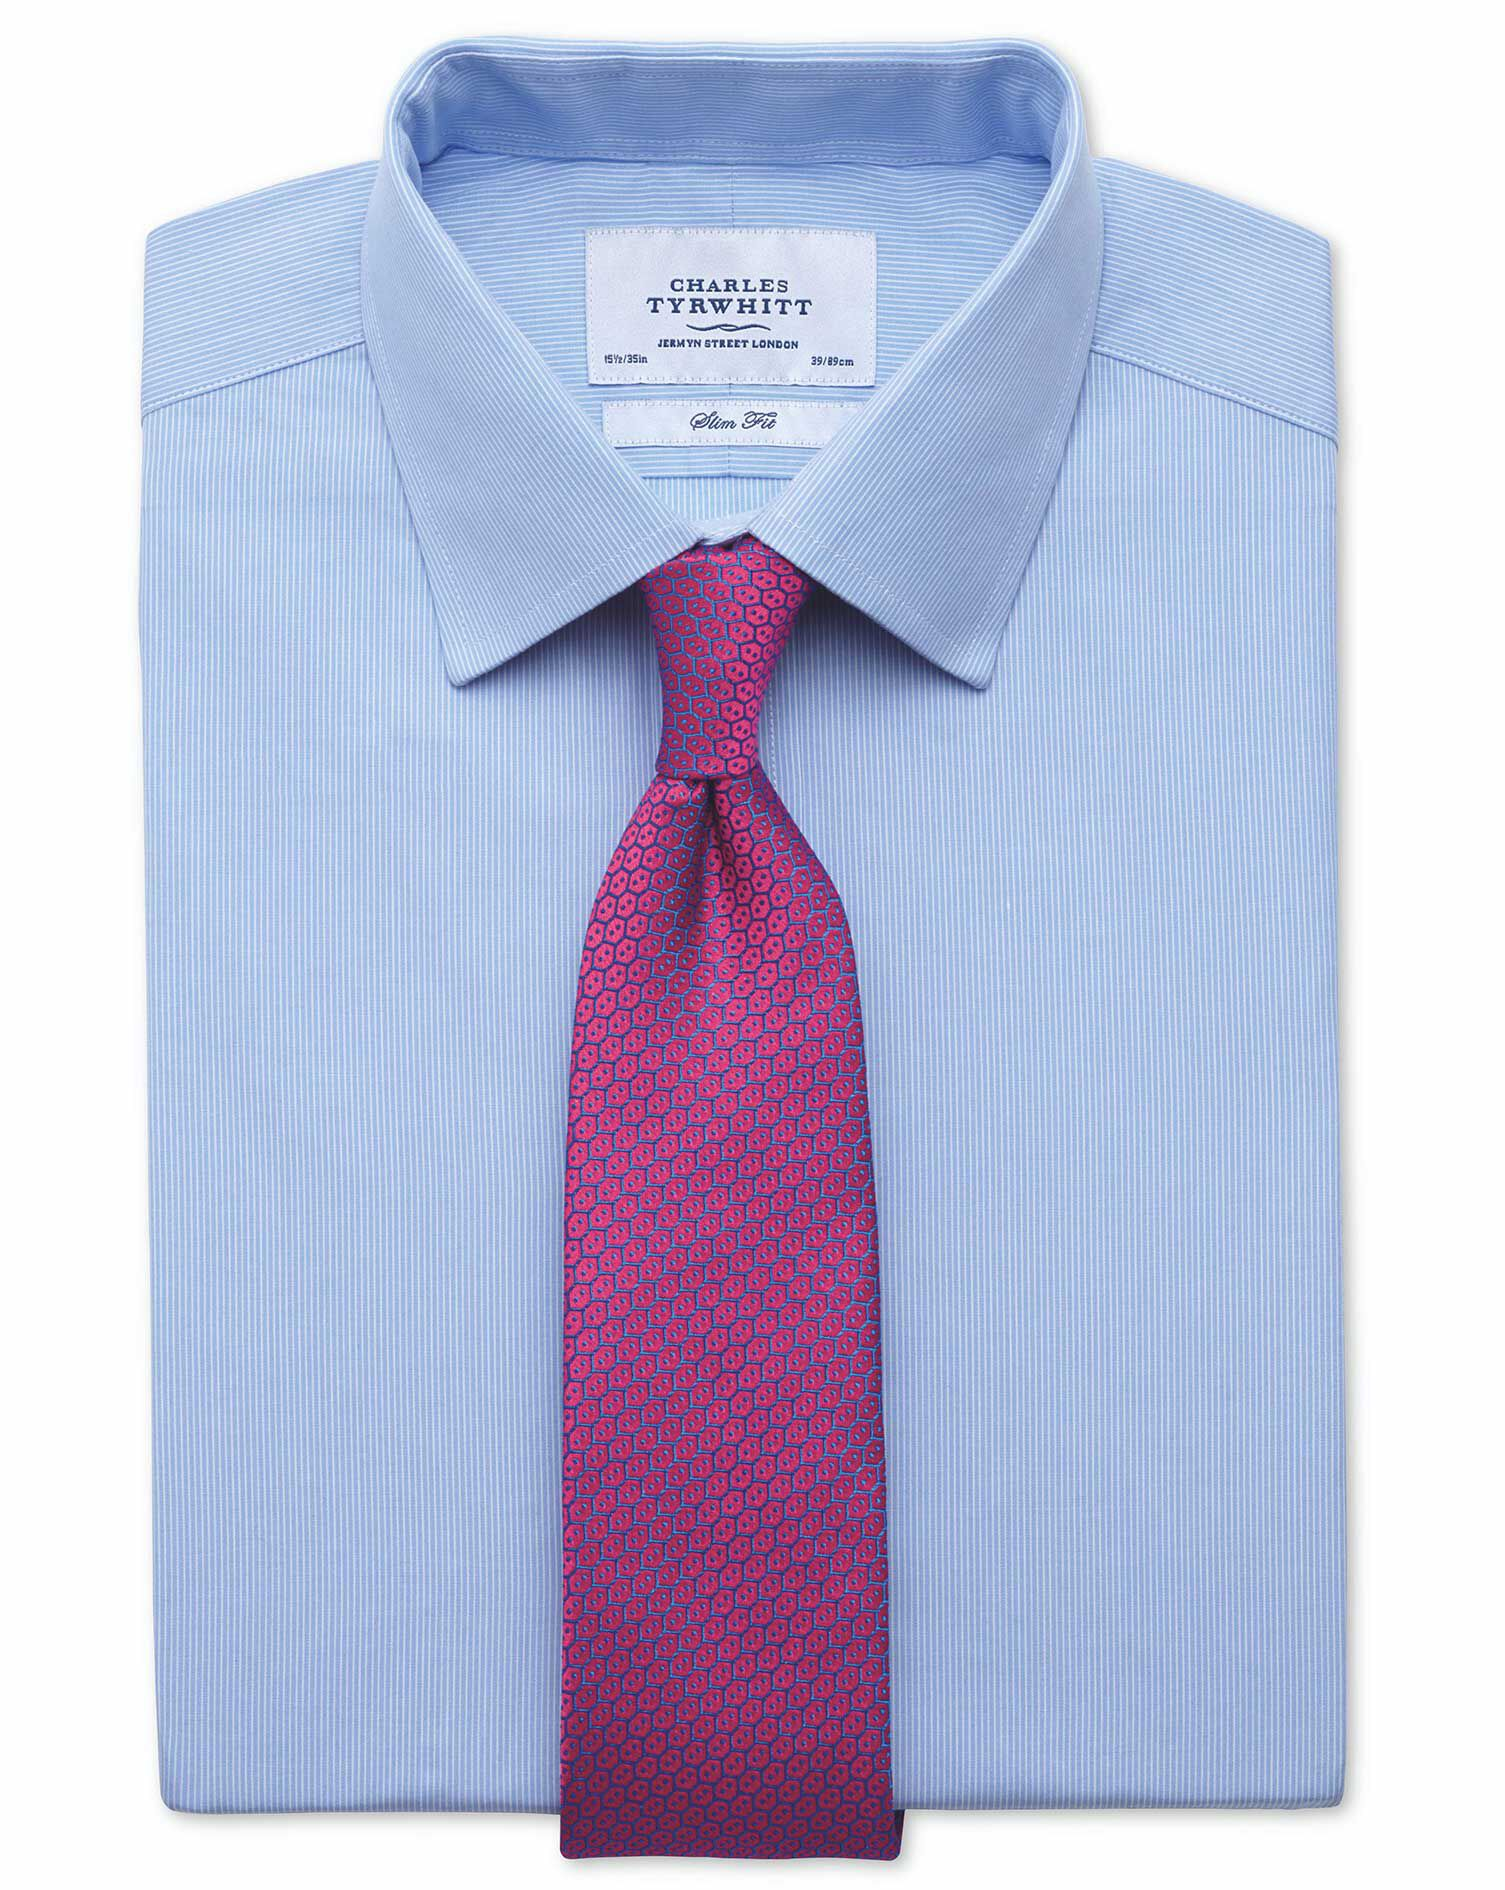 Classic Fit Fine Stripe Sky Blue Cotton Formal Shirt Double Cuff Size 15/33 by Charles Tyrwhitt